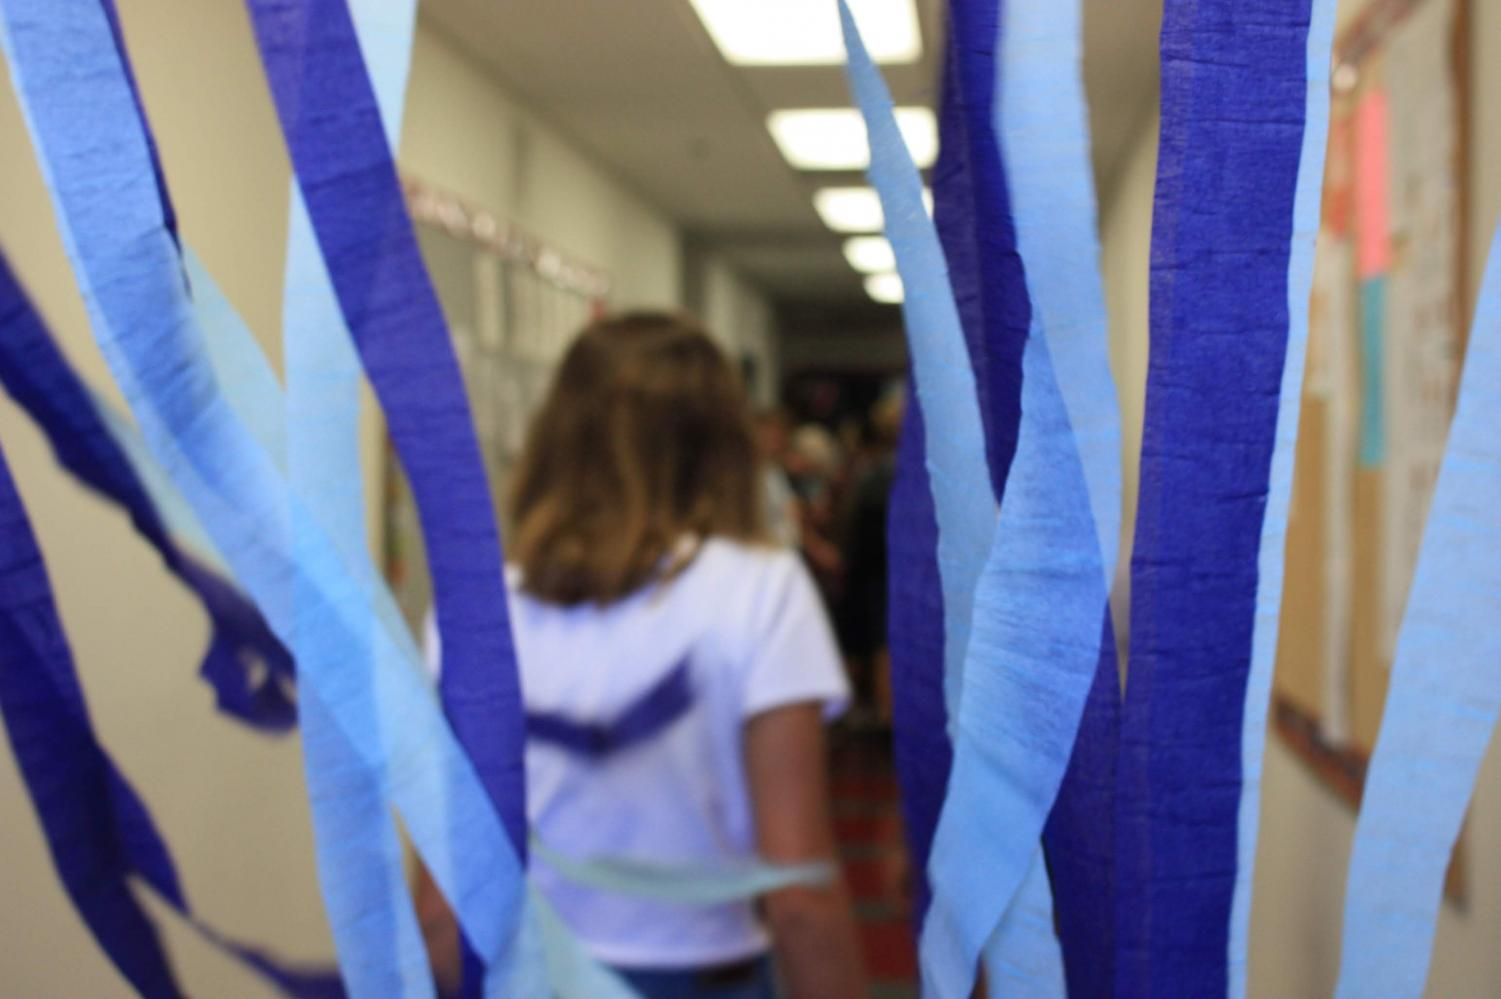 A freshman passes through streamers leading into the Black Box